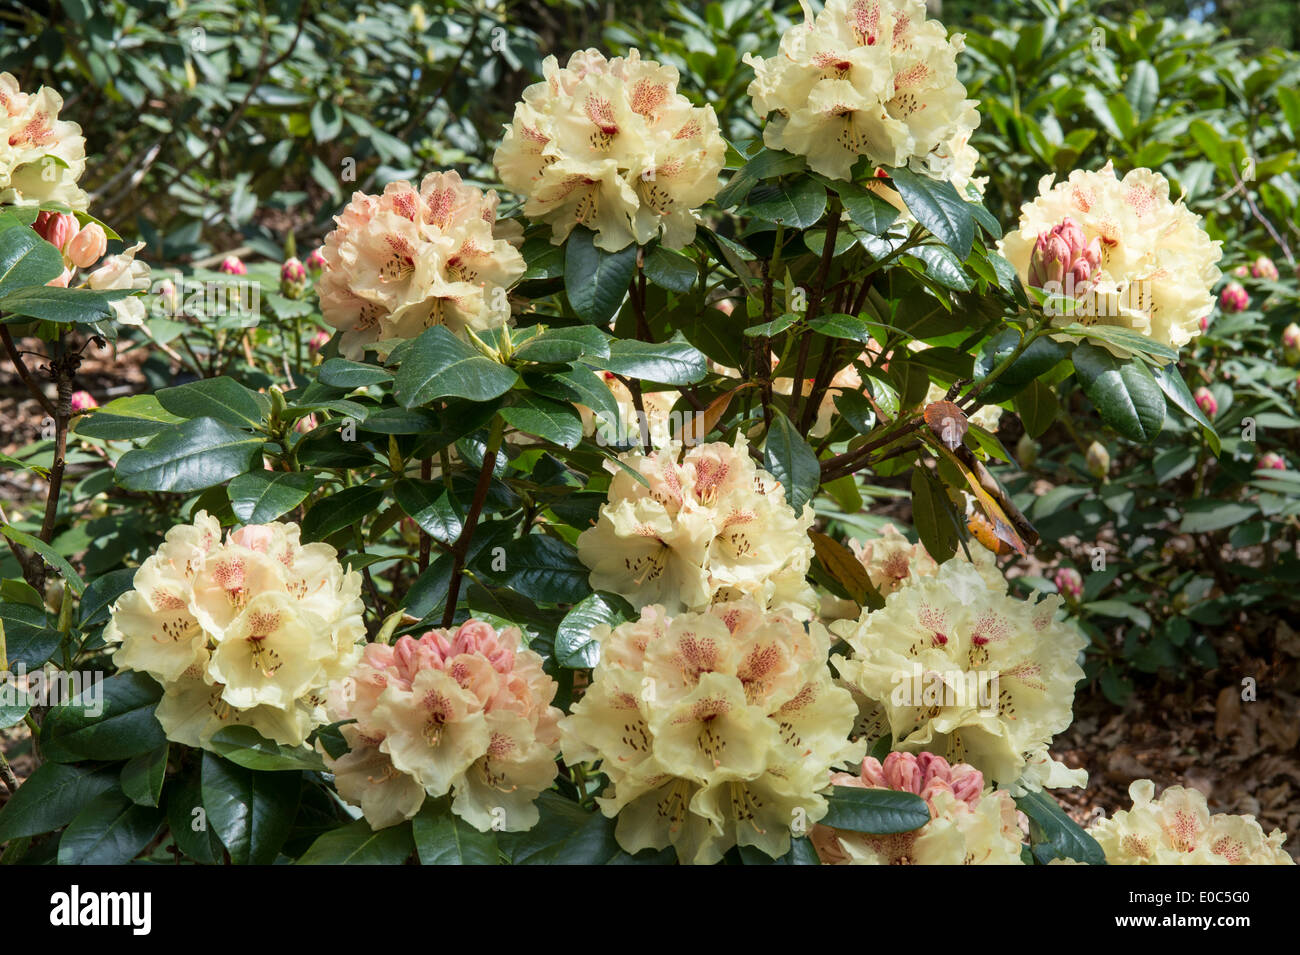 Rhododendron 'Goldprinz' Himalayan Garden and Sculpture Park North Yorkshire England UK Europe May - Stock Image